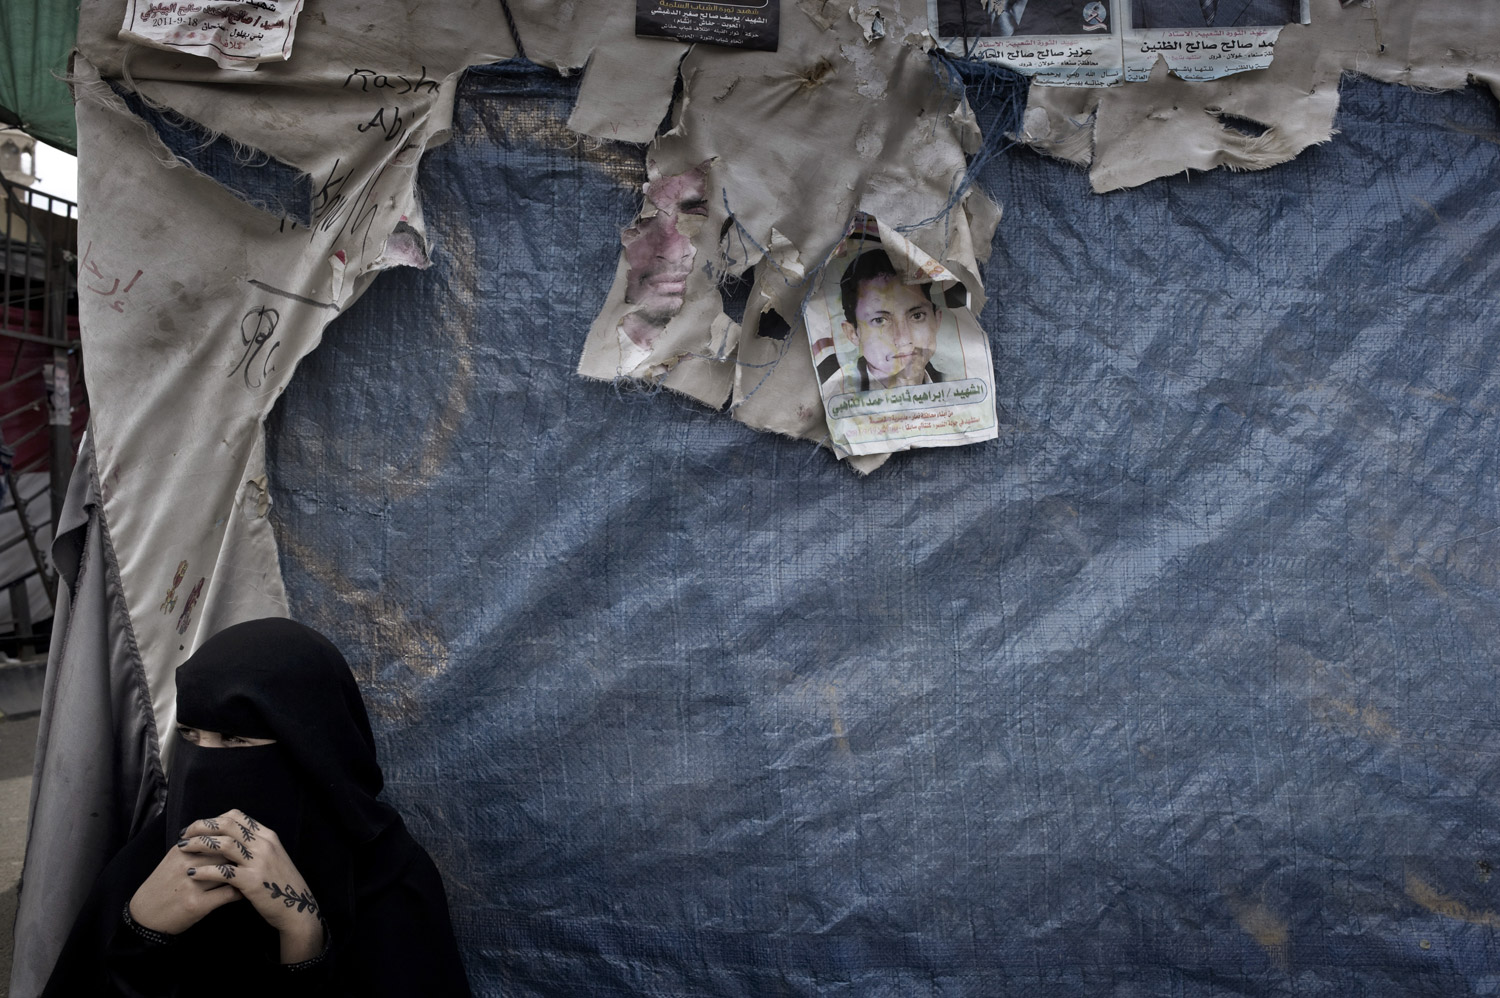 A Yemeni woman outside of a makeshift tent on September 29, 2011.